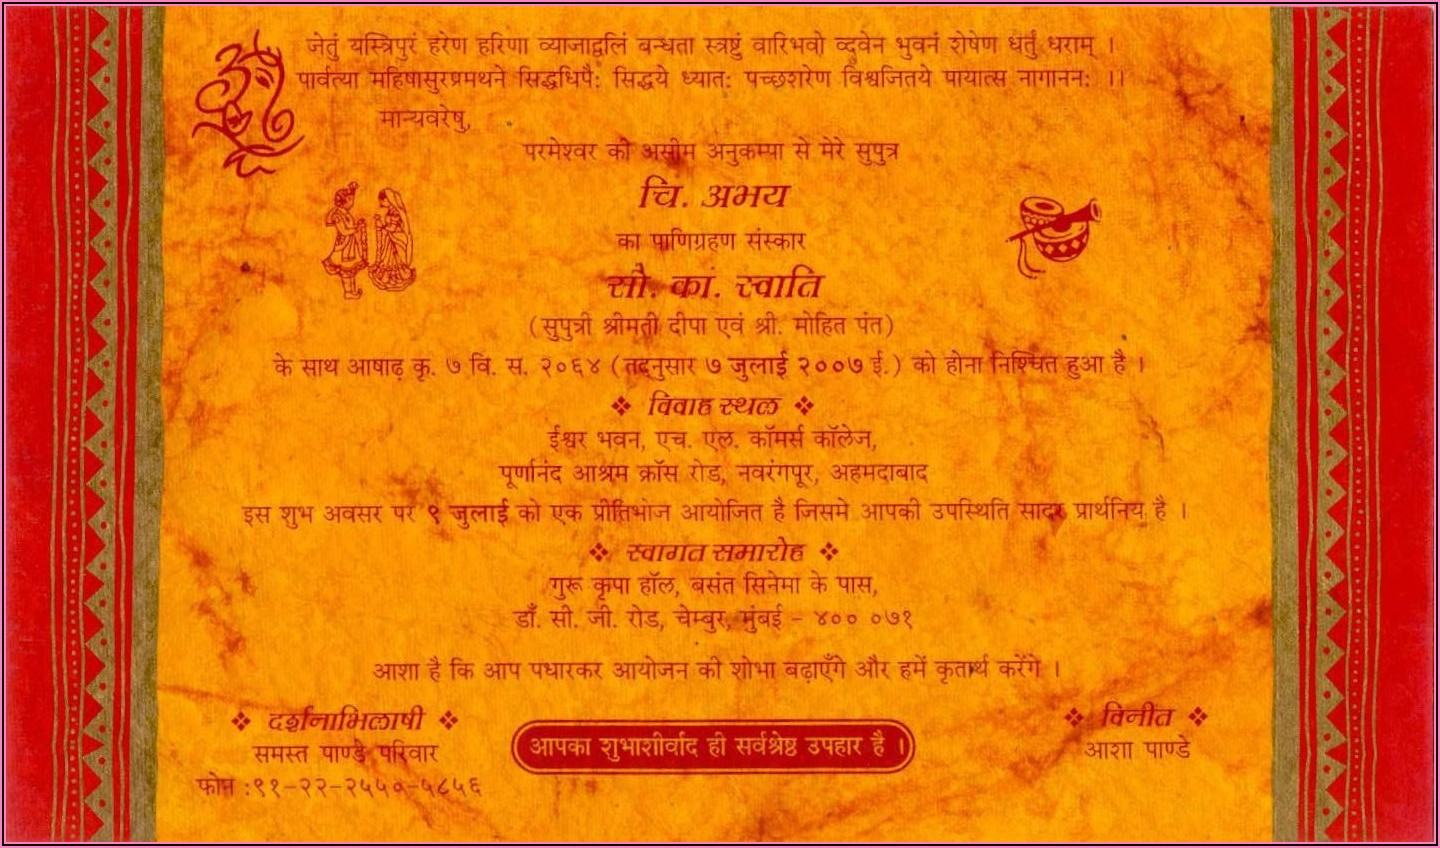 Indian Wedding Invitation Card Format In Hindi